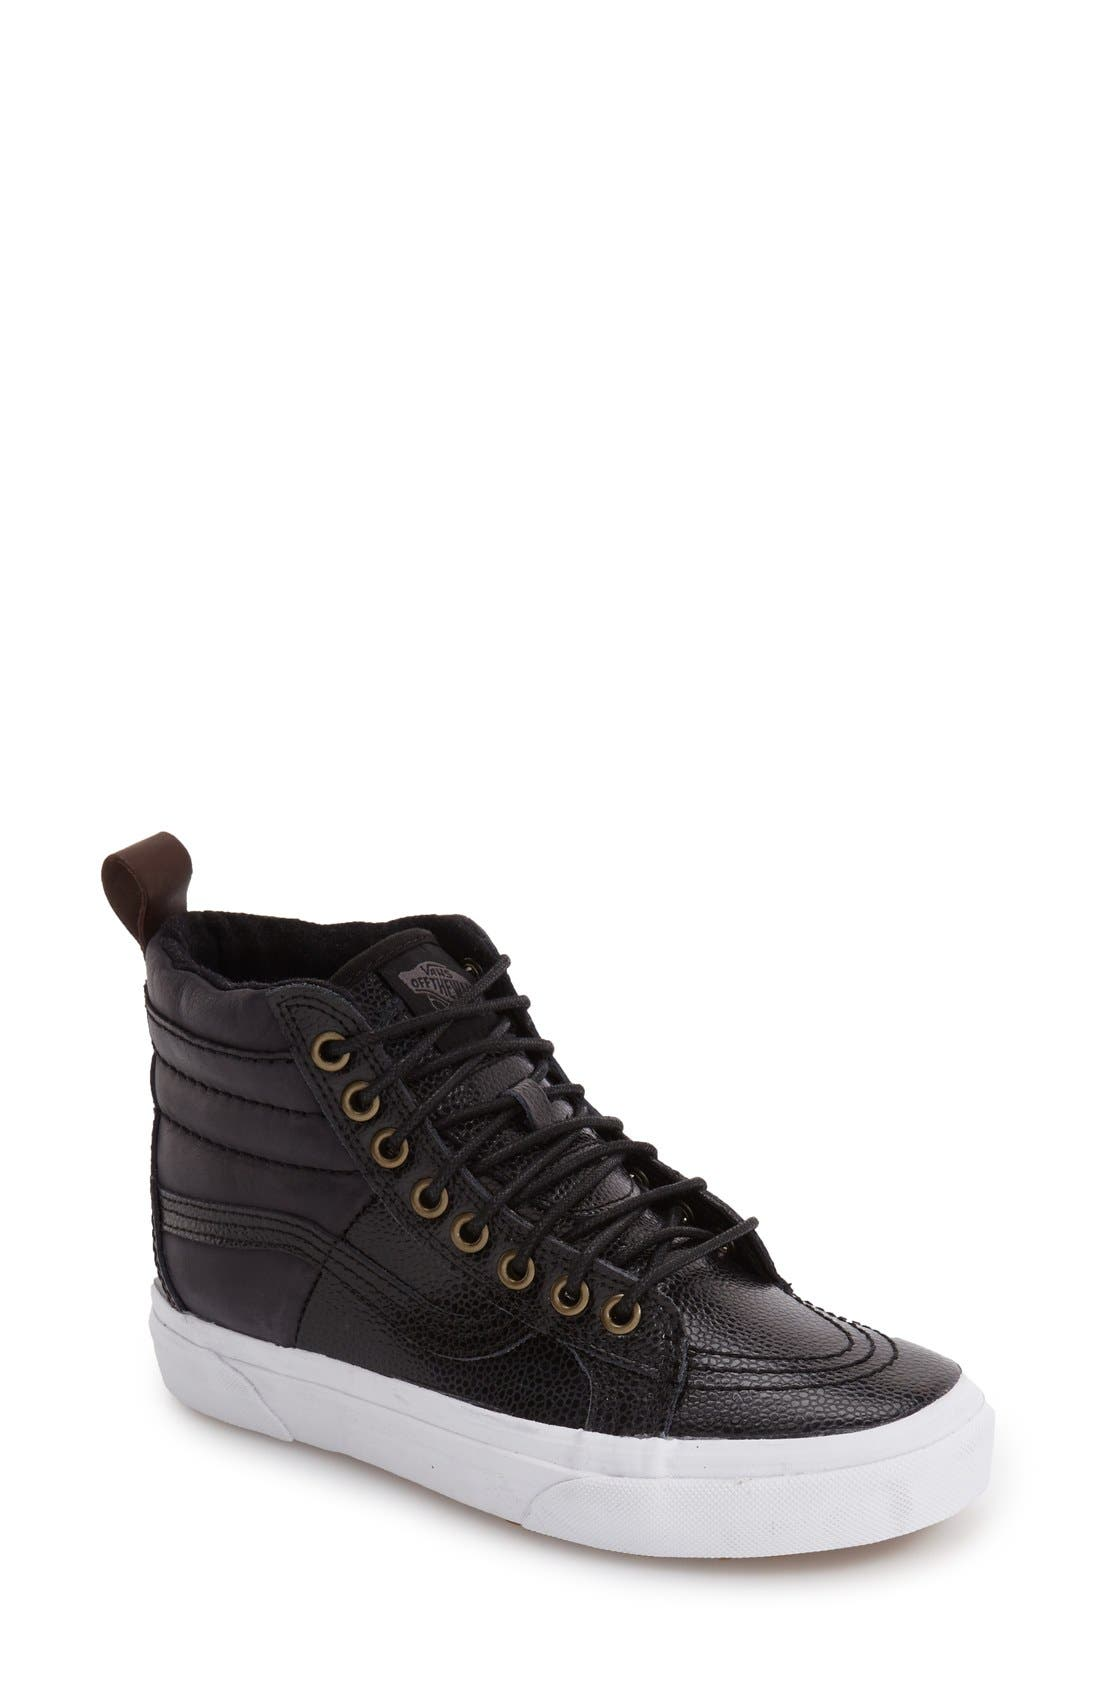 'Hana Beaman - Sk8-Hi 46 MTE' Water Resistant High Top Sneaker,                             Main thumbnail 1, color,                             001